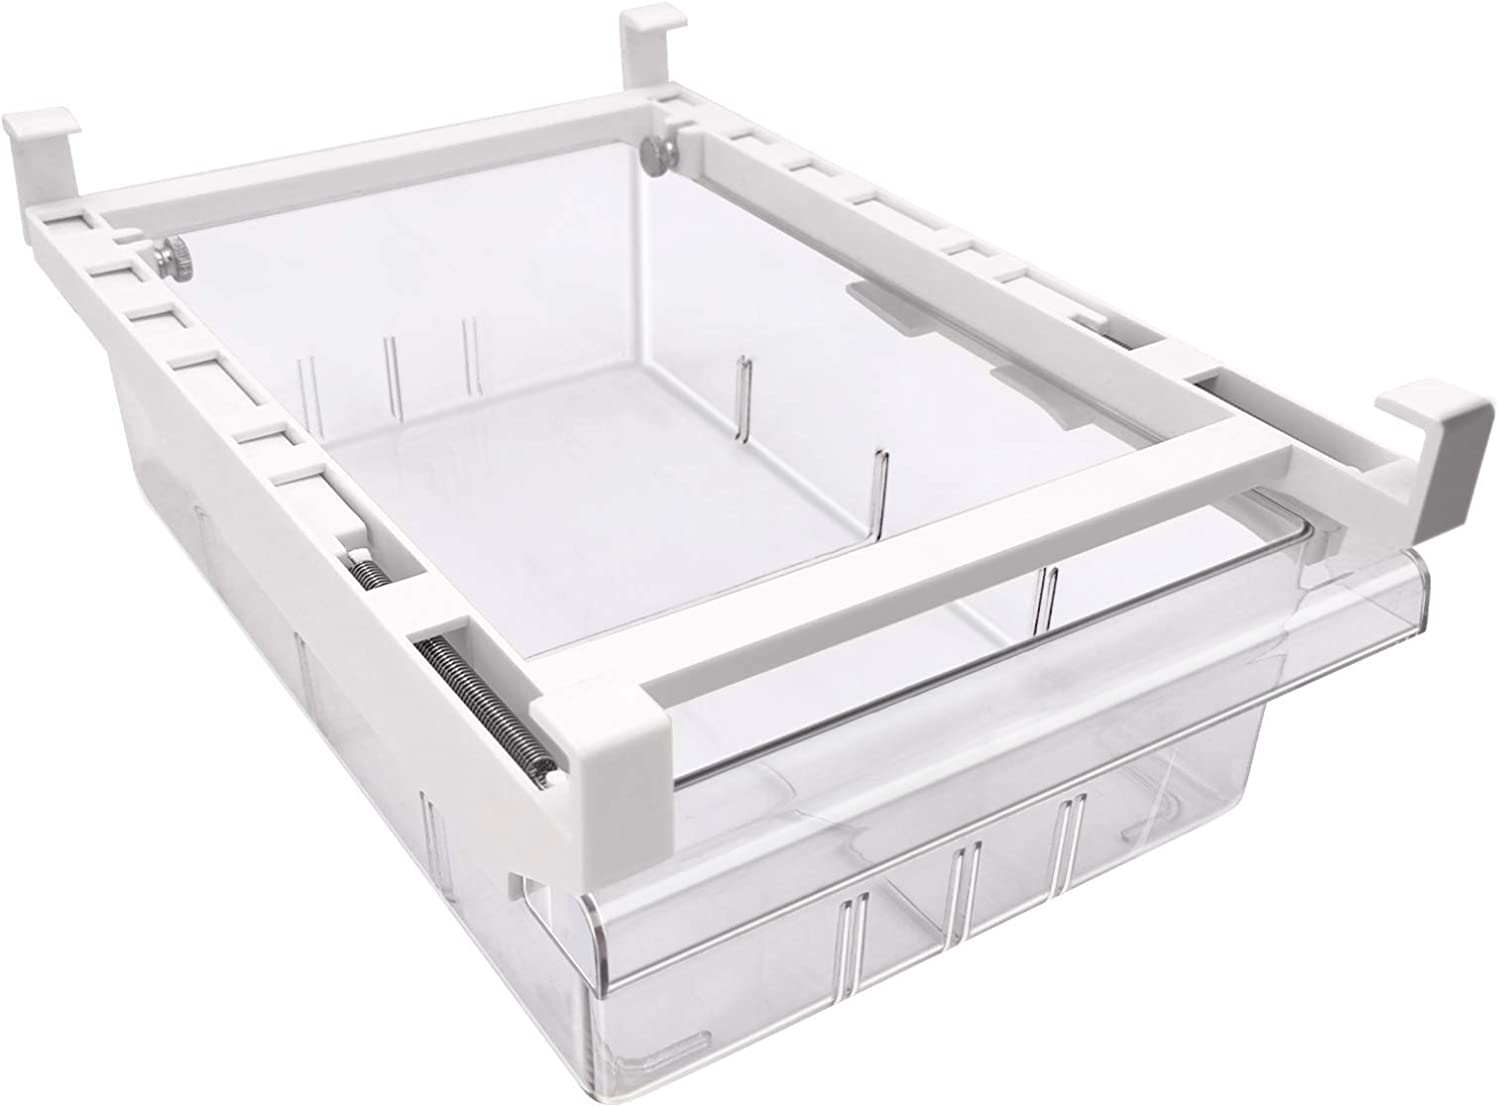 Refrigerator Organizer Bins, Under the Refrigerator Partition Organizers and Storage Box, Fit for Fridge Shelf Under 0.6""